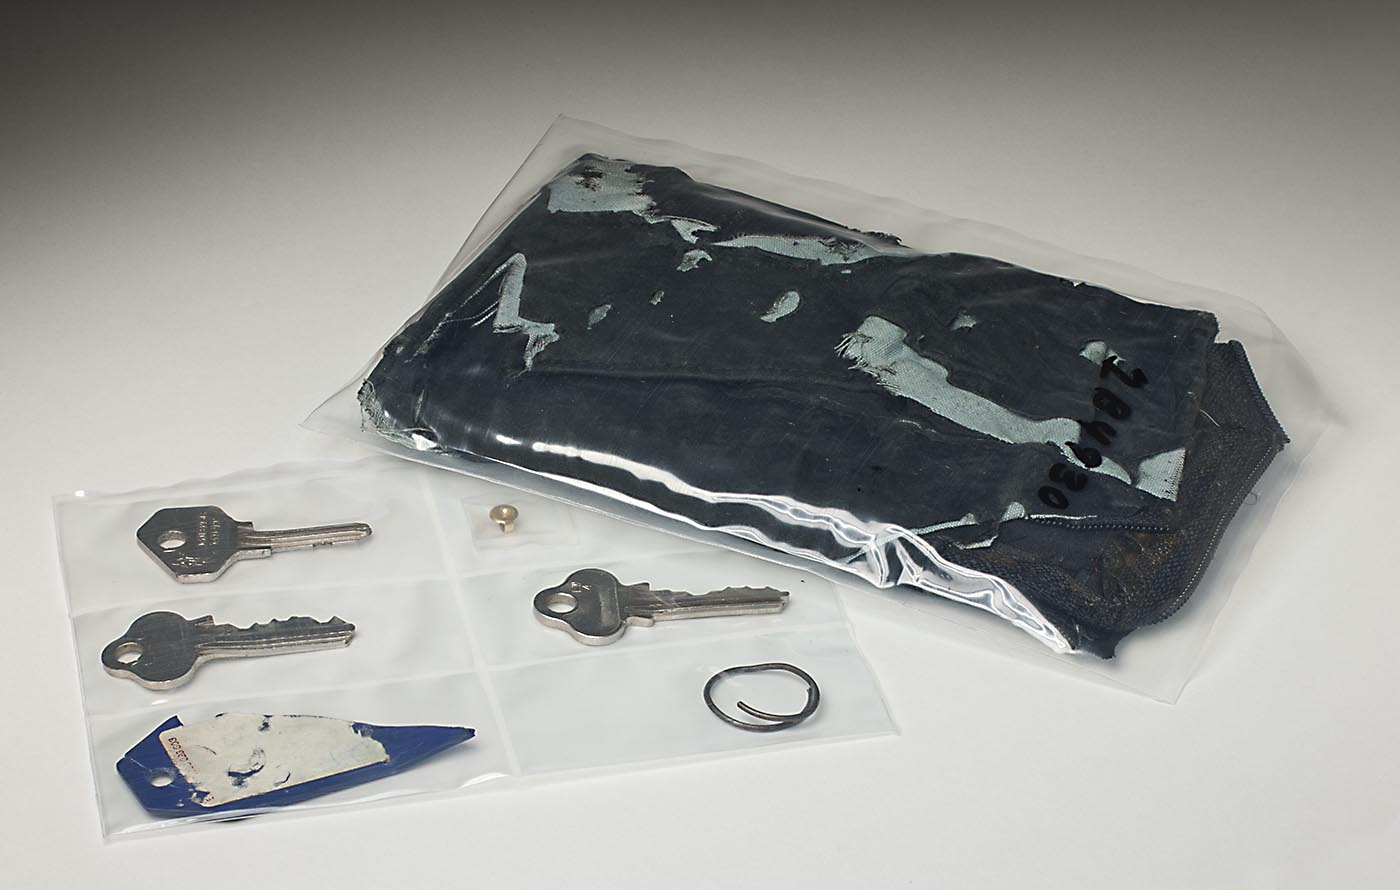 A dark blue leather wallet inside a plastic pouch, alongside another plastic pouch with six small compartments. These contain three silver keys, a remant of a blue plastic tag, a small metal ring and a metal earring fixture.